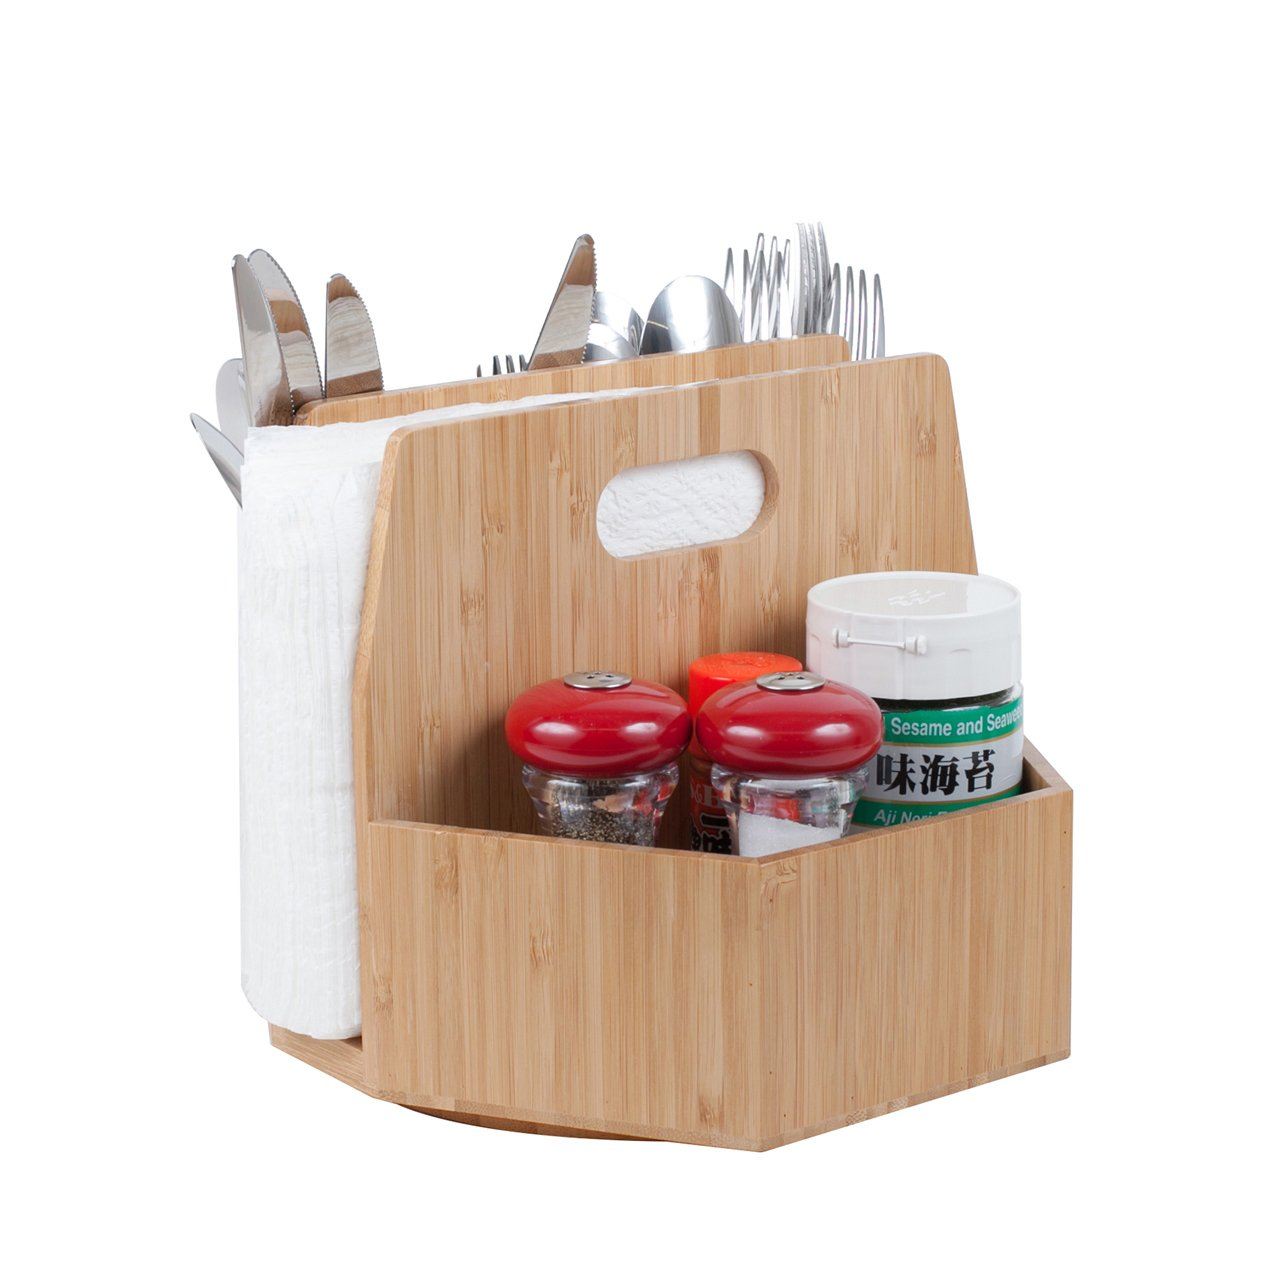 MobileVision Bamboo Pot Lid Holder Organizer for Storage in Cabinets or Kitchen Countertops and Cupboards CE Supply 1864AA